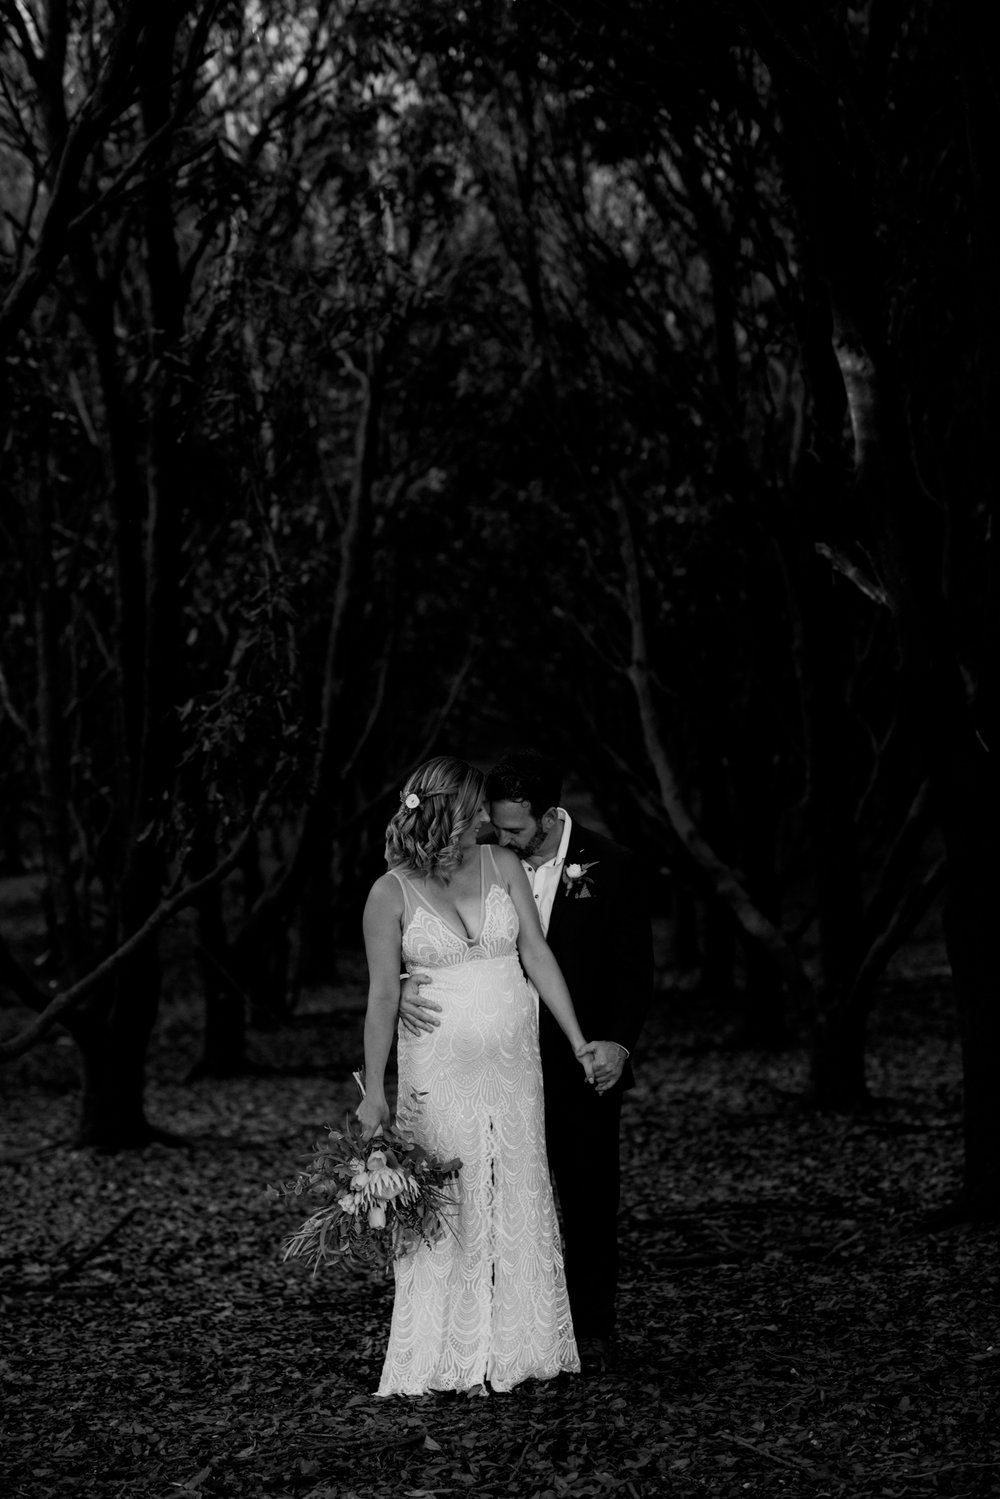 Brisbane Wedding Photographer | Engagement-Elopement Photography-27.jpg